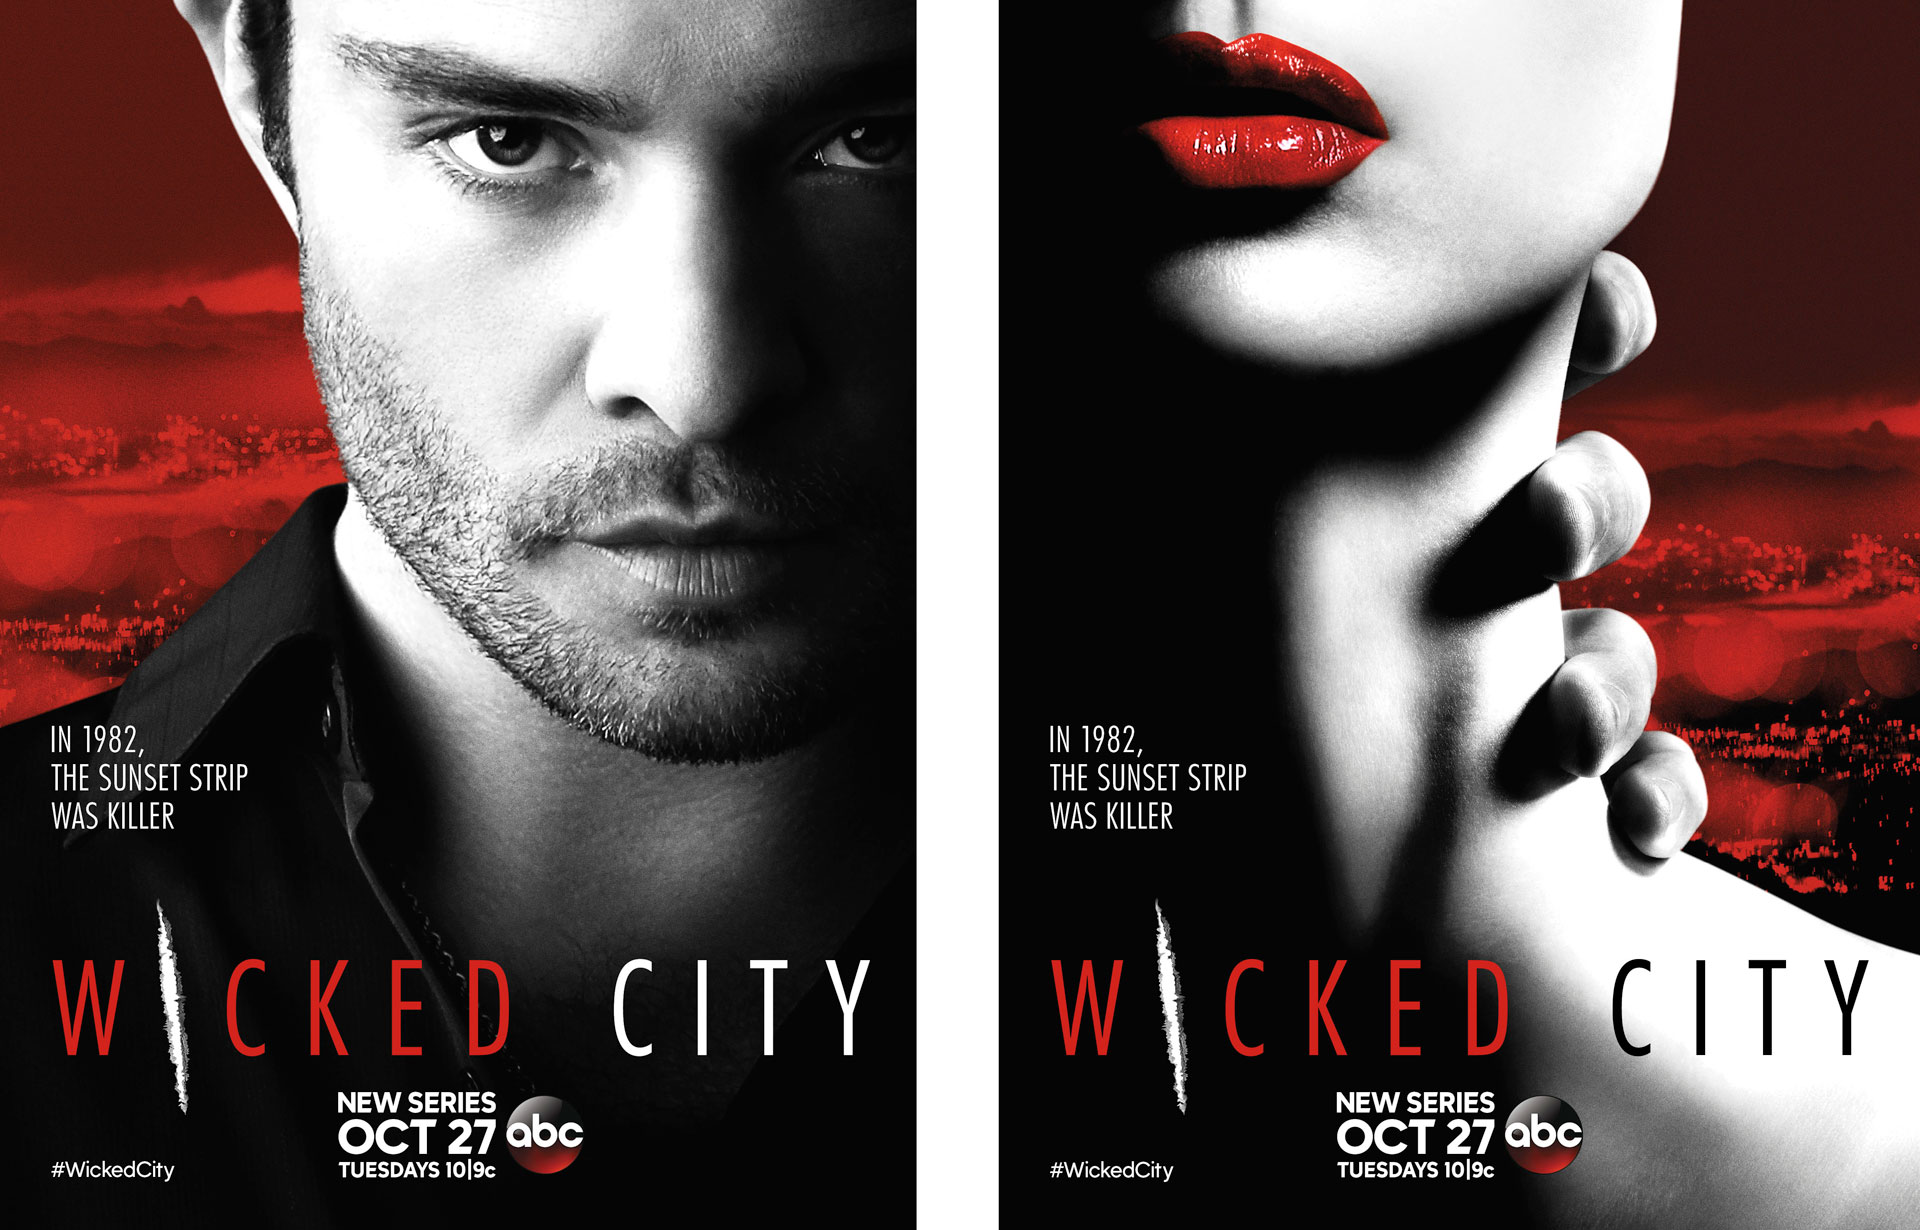 wicked city ed westwick posters